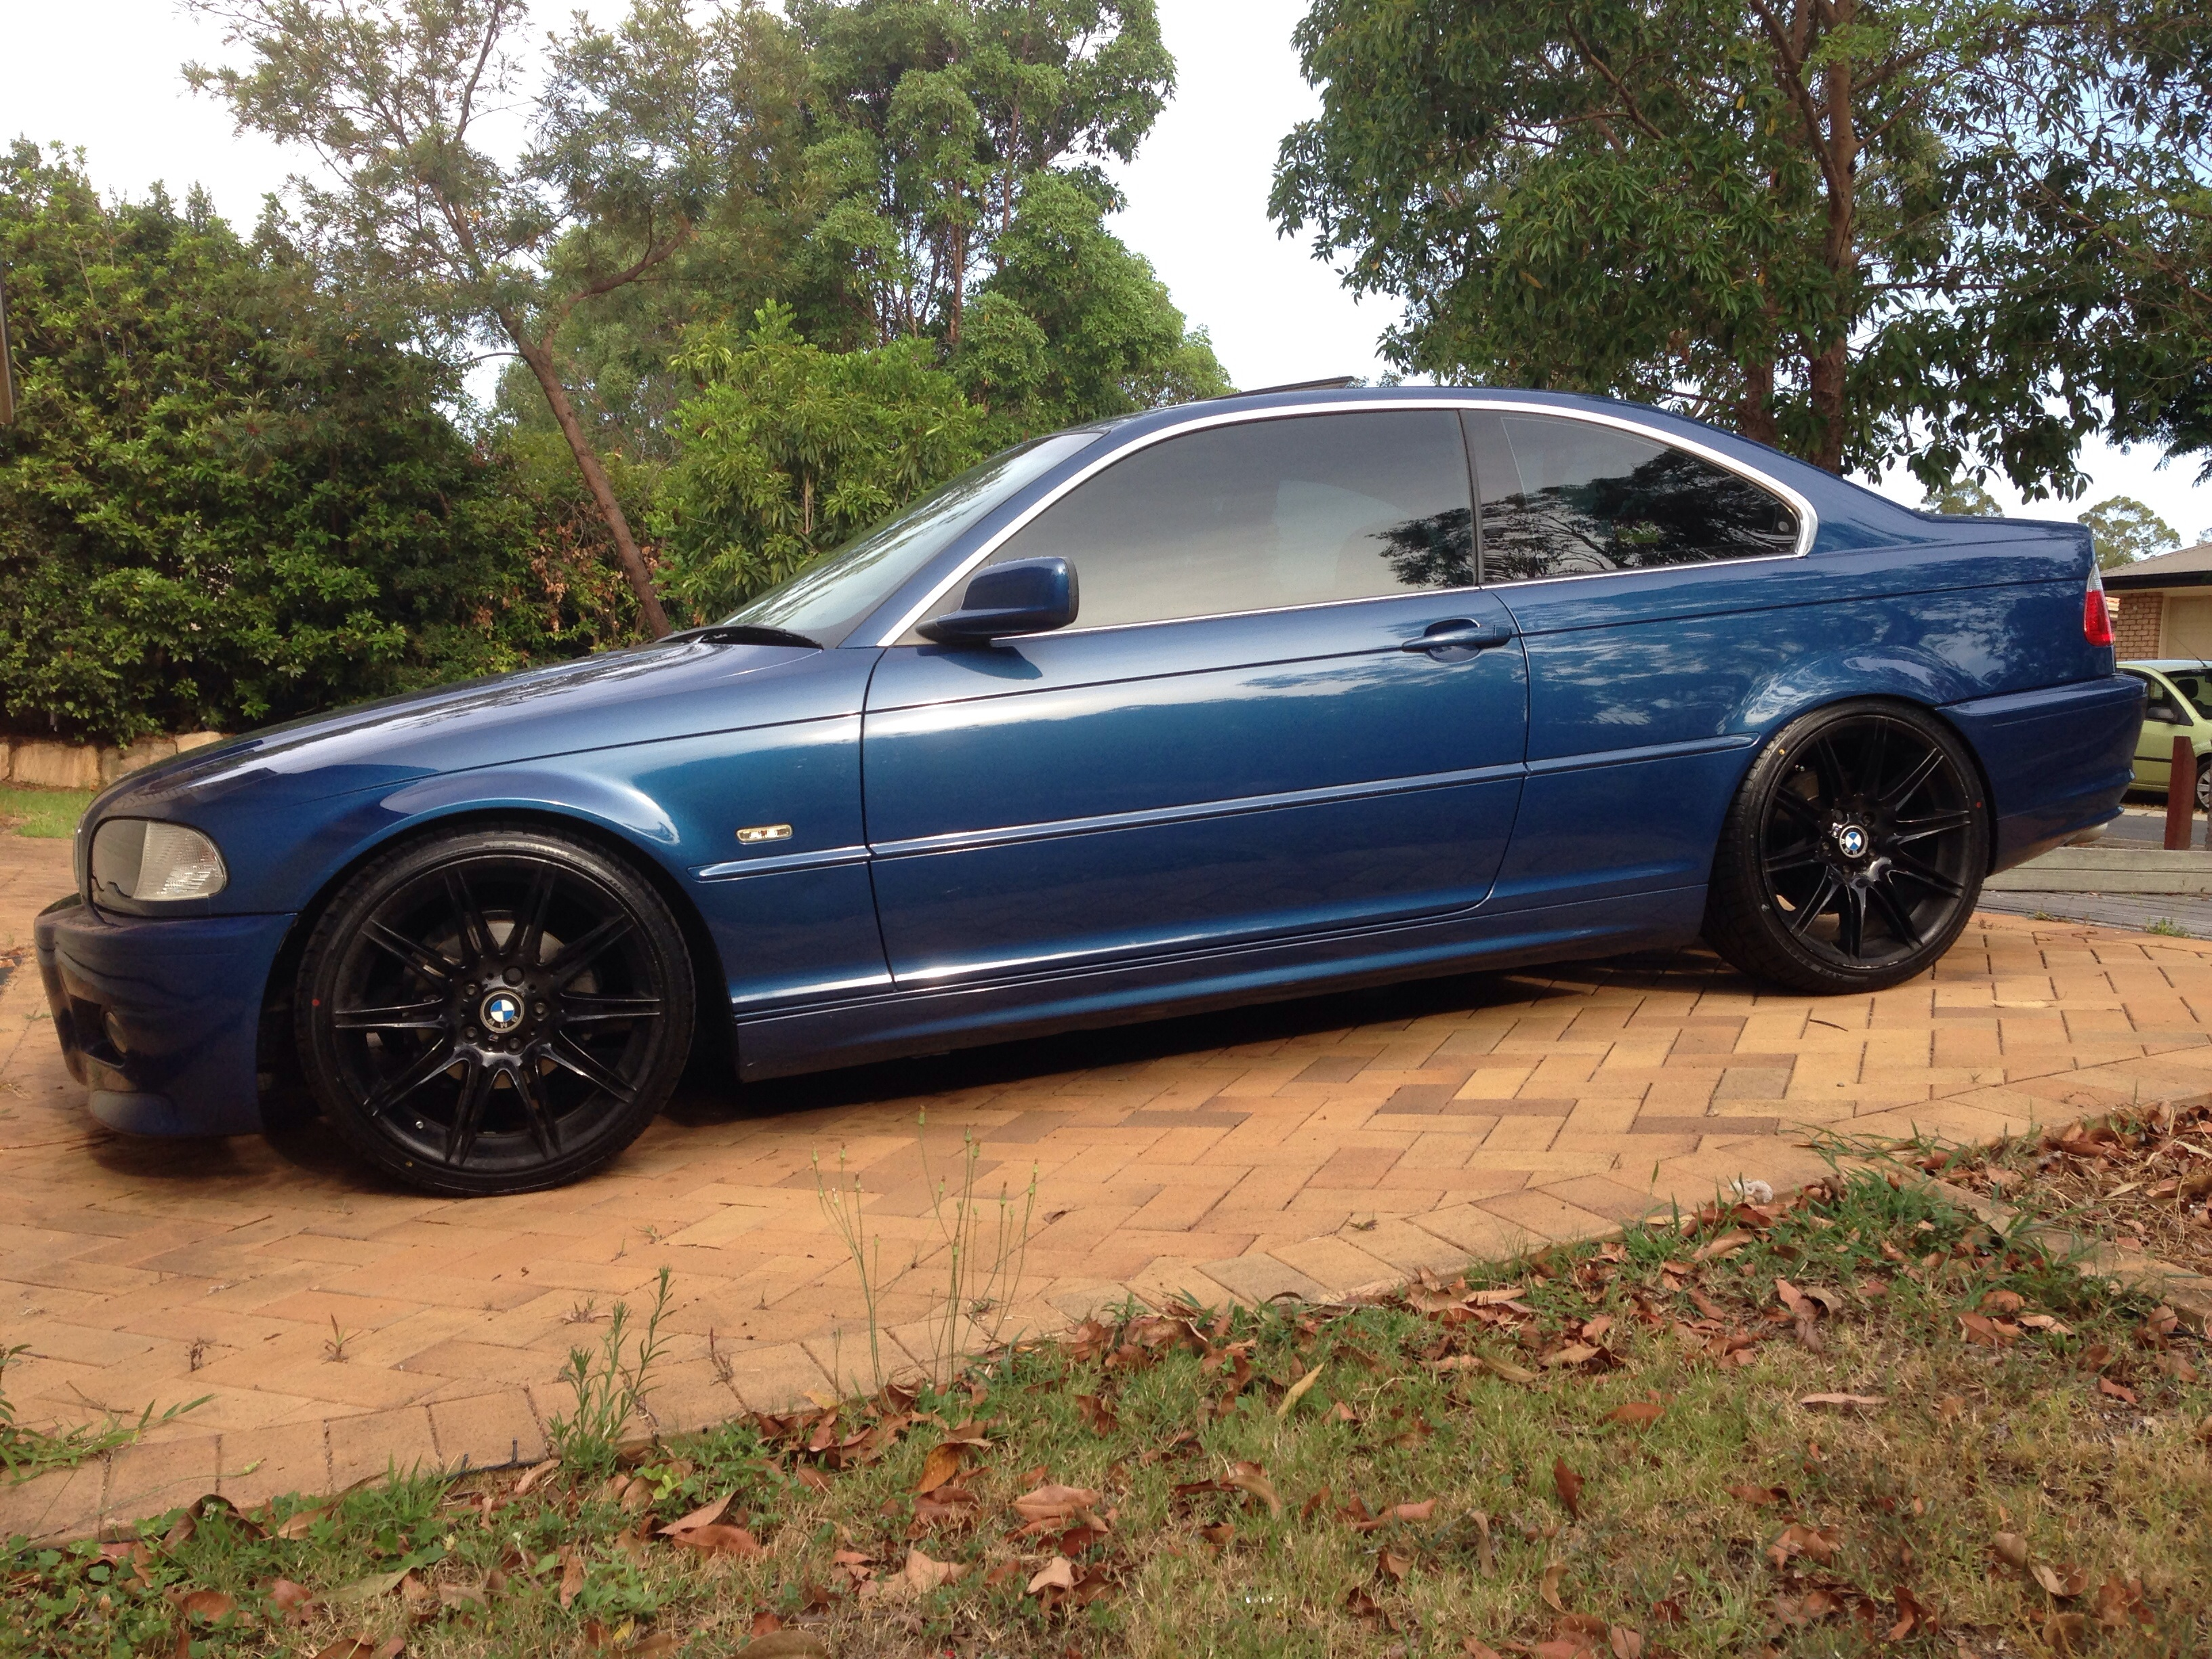 2000 bmw 323ci e46 for sale or swap qld brisbane. Black Bedroom Furniture Sets. Home Design Ideas